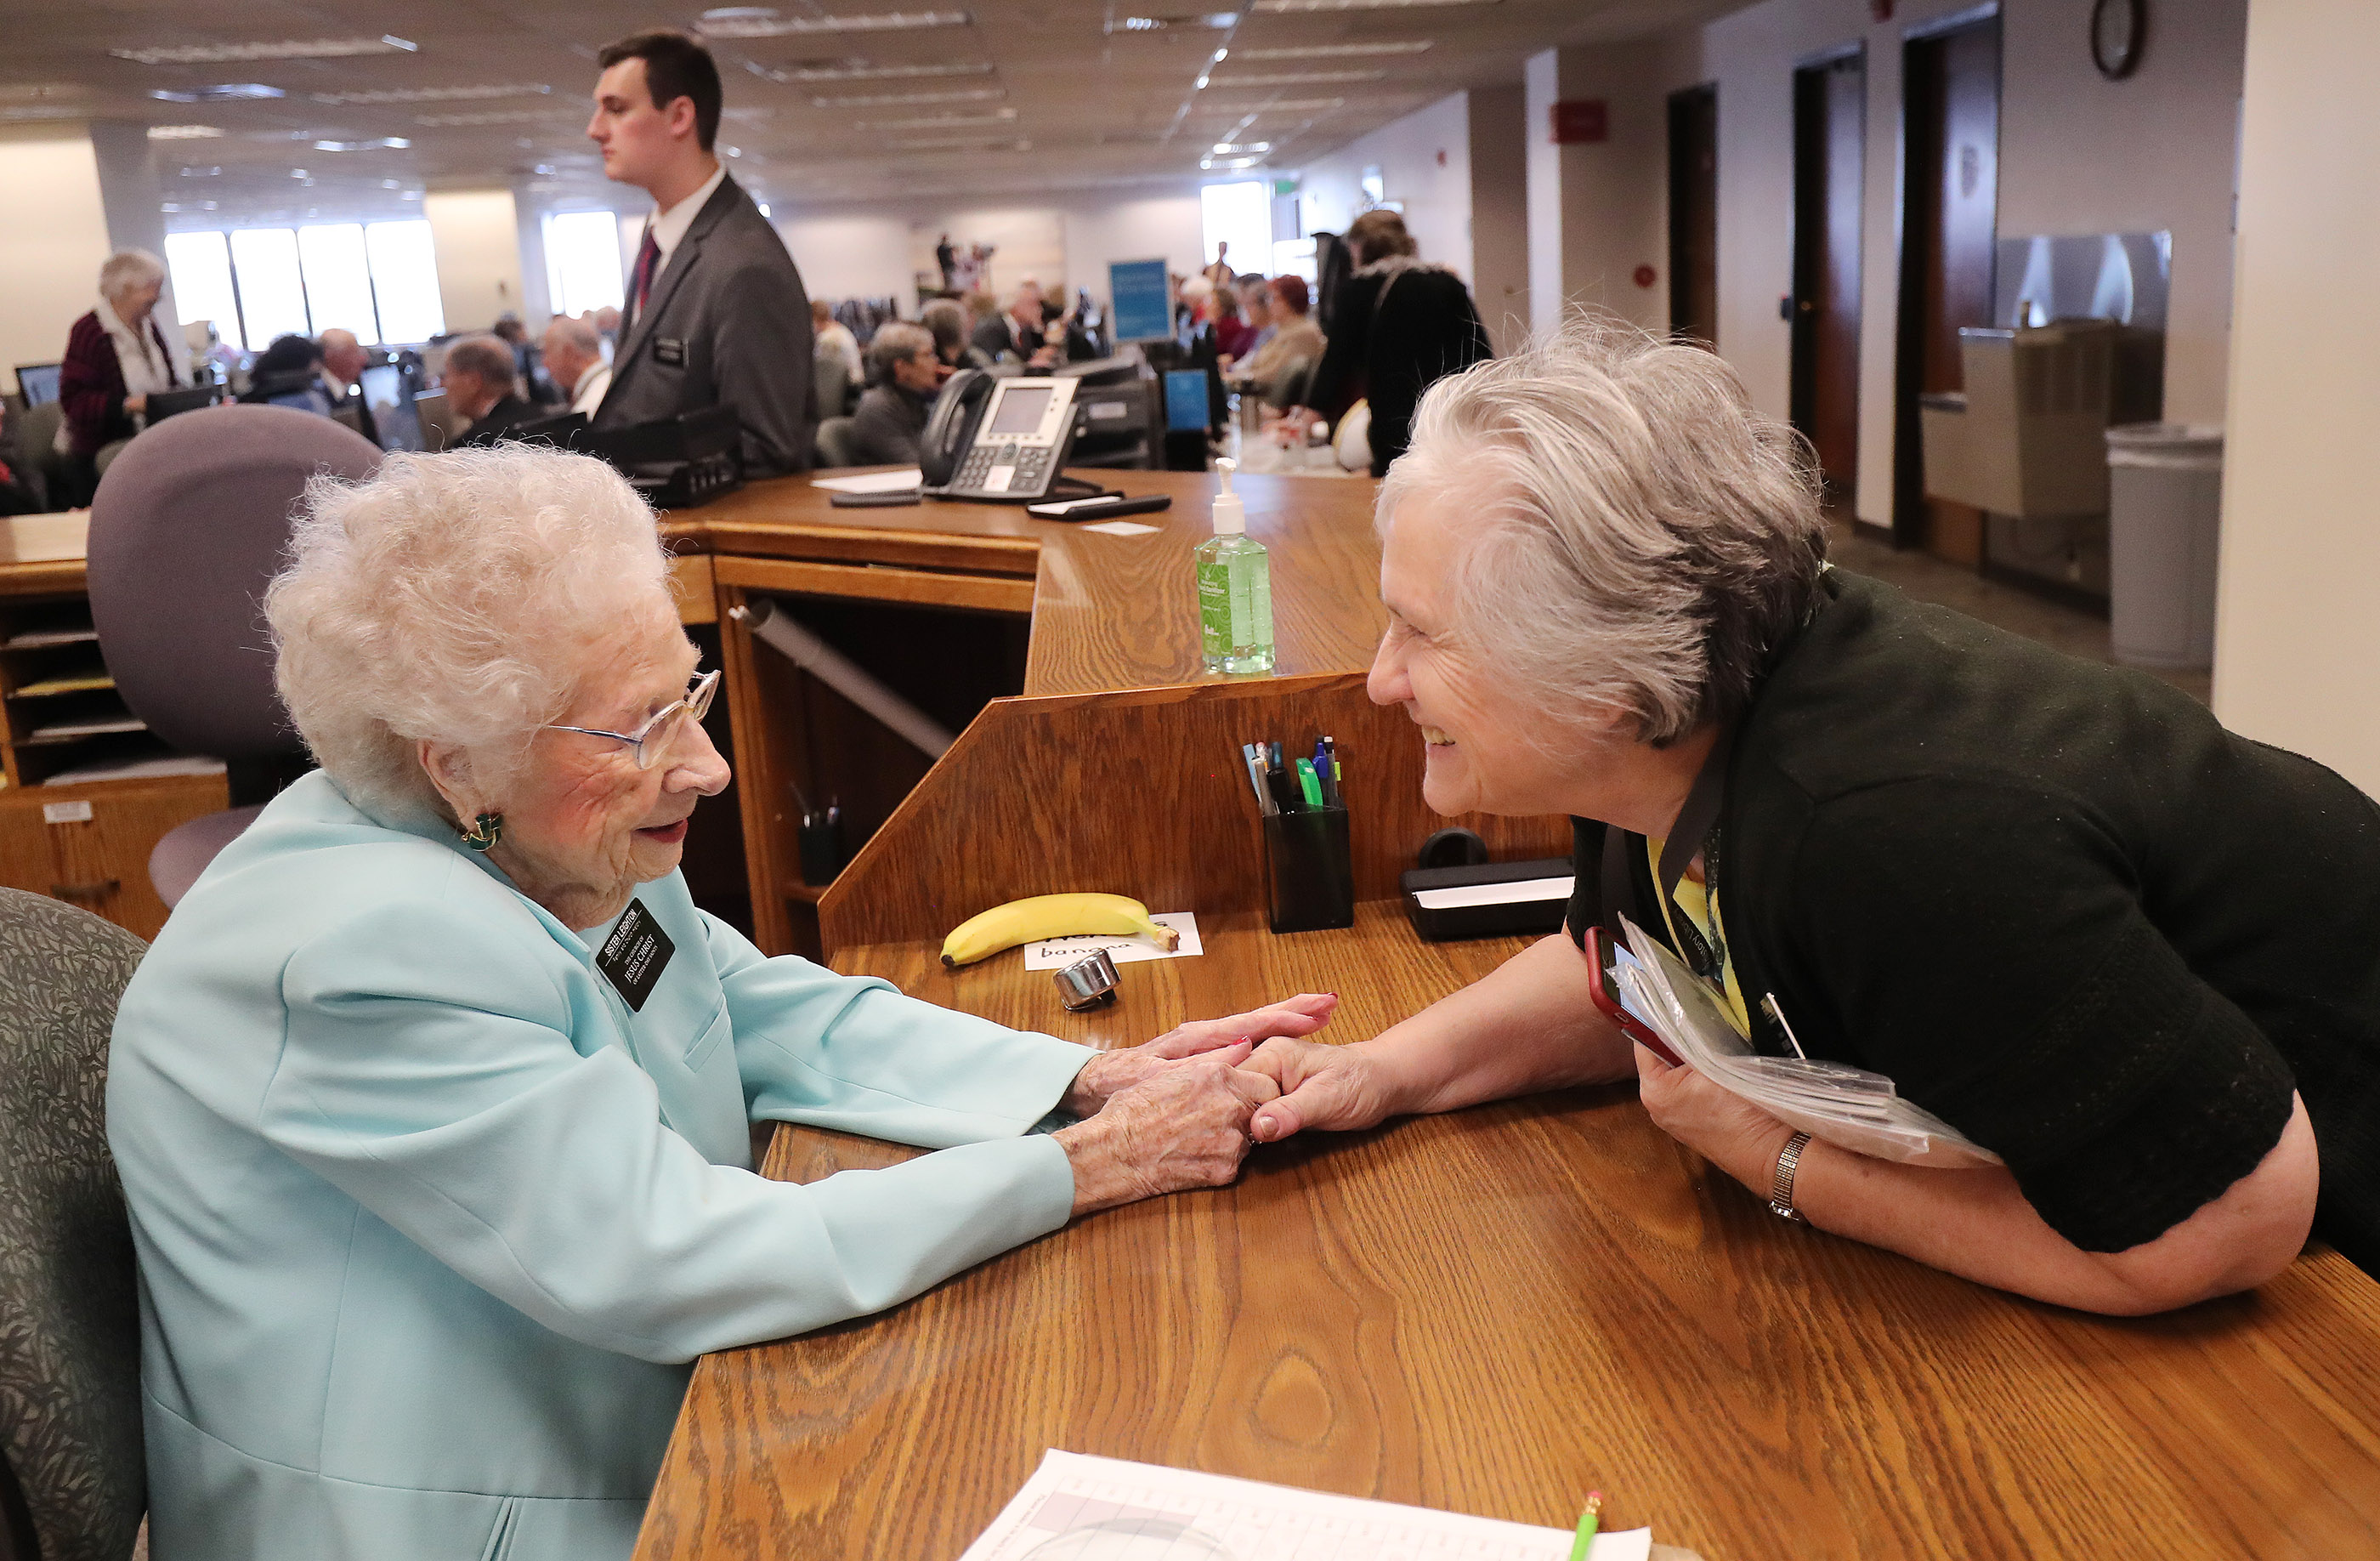 Nellie Leighton, 99, left, talks with fellow missionary Carolyn Woodman at the Family History Library in Salt Lake City on Tuesday, Jan. 22, 2019. Leighton will celebrate her 100th birthday in February.